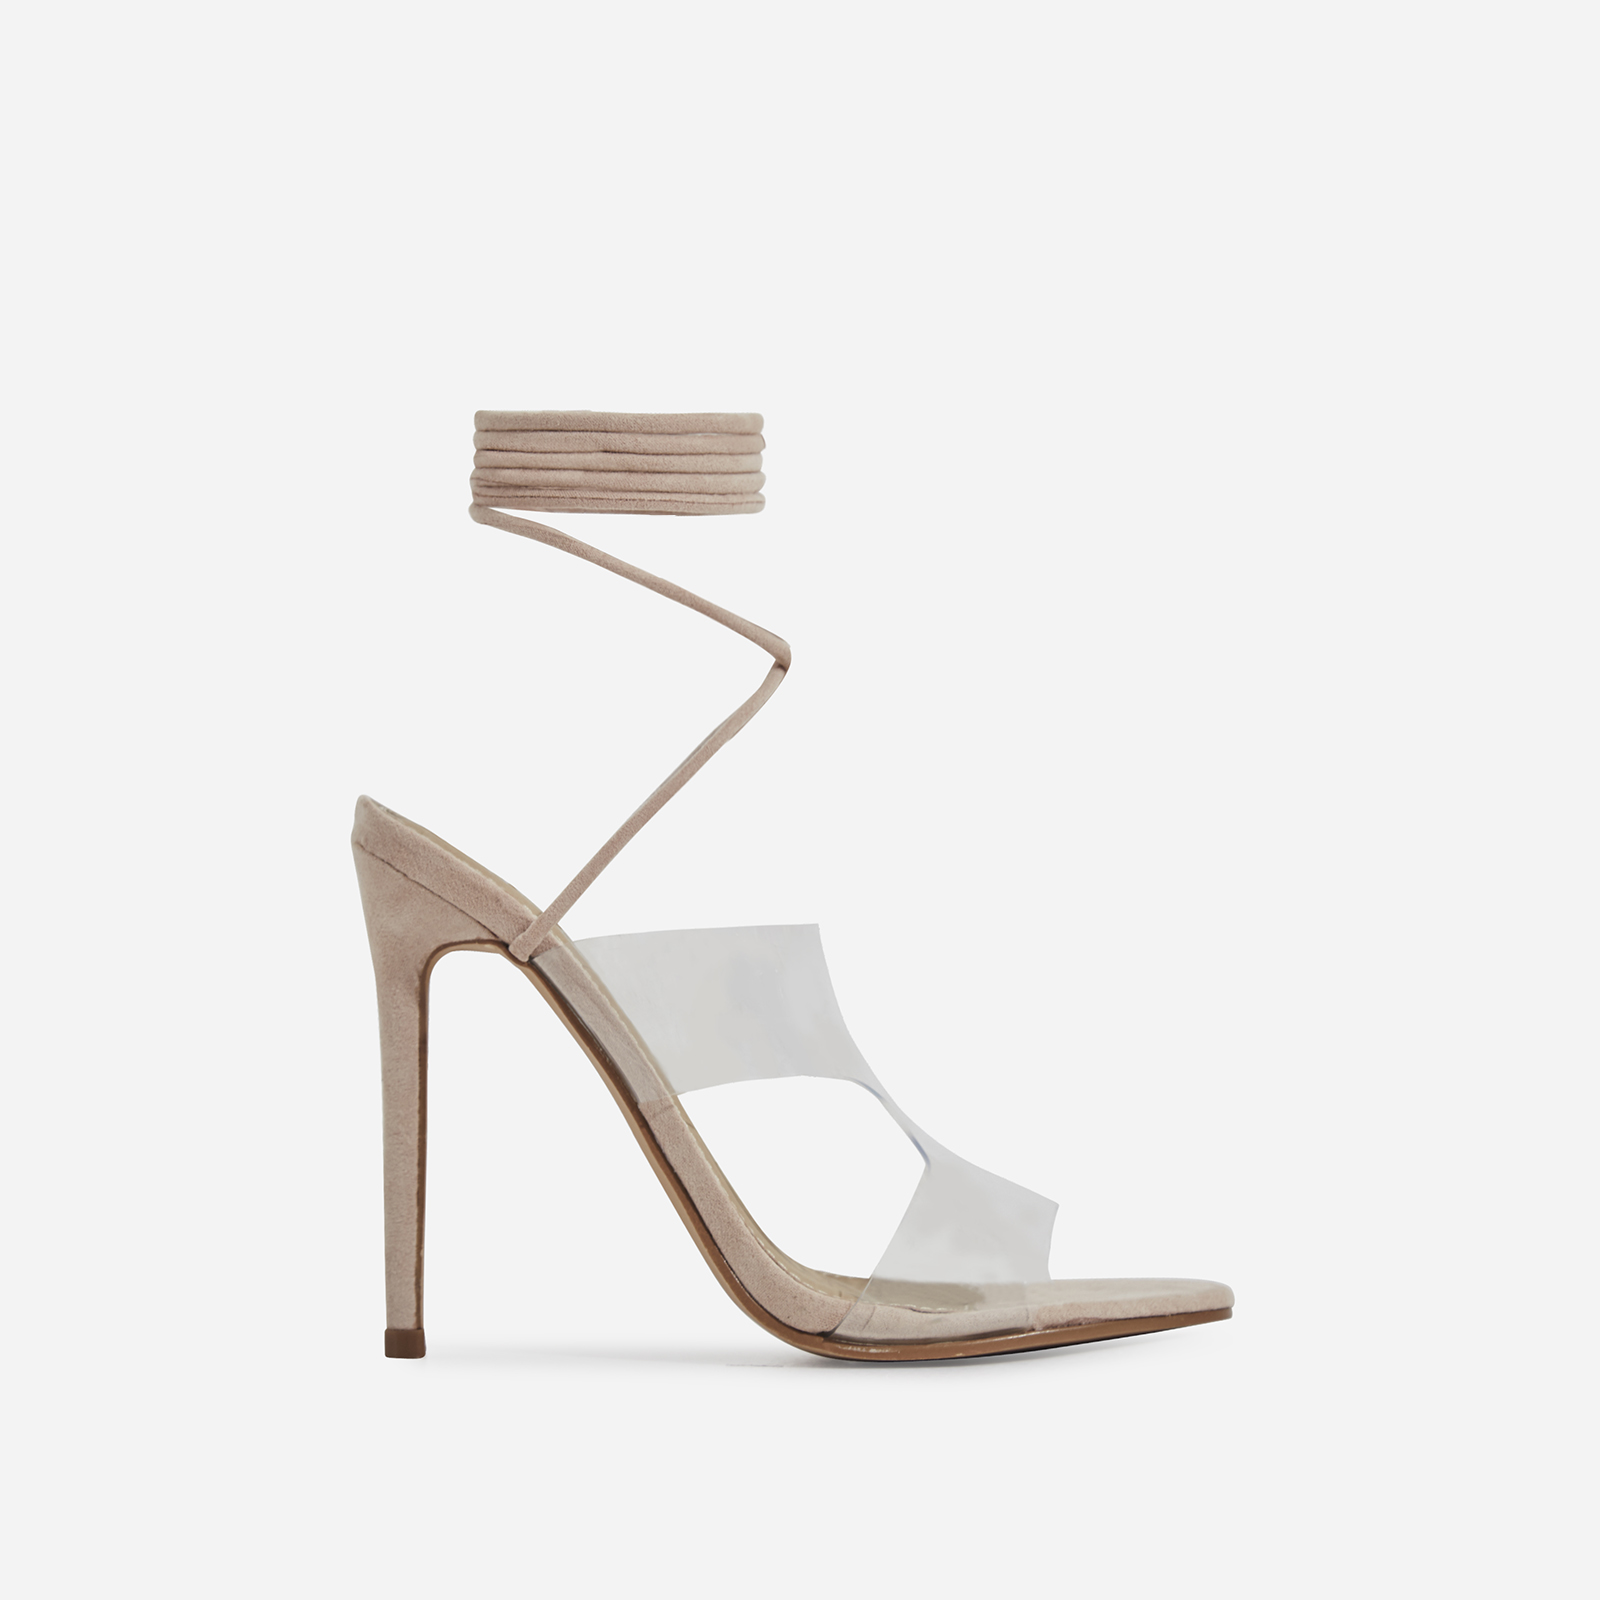 Vivica Lace Up Perspex Heel In Nude Faux Suede